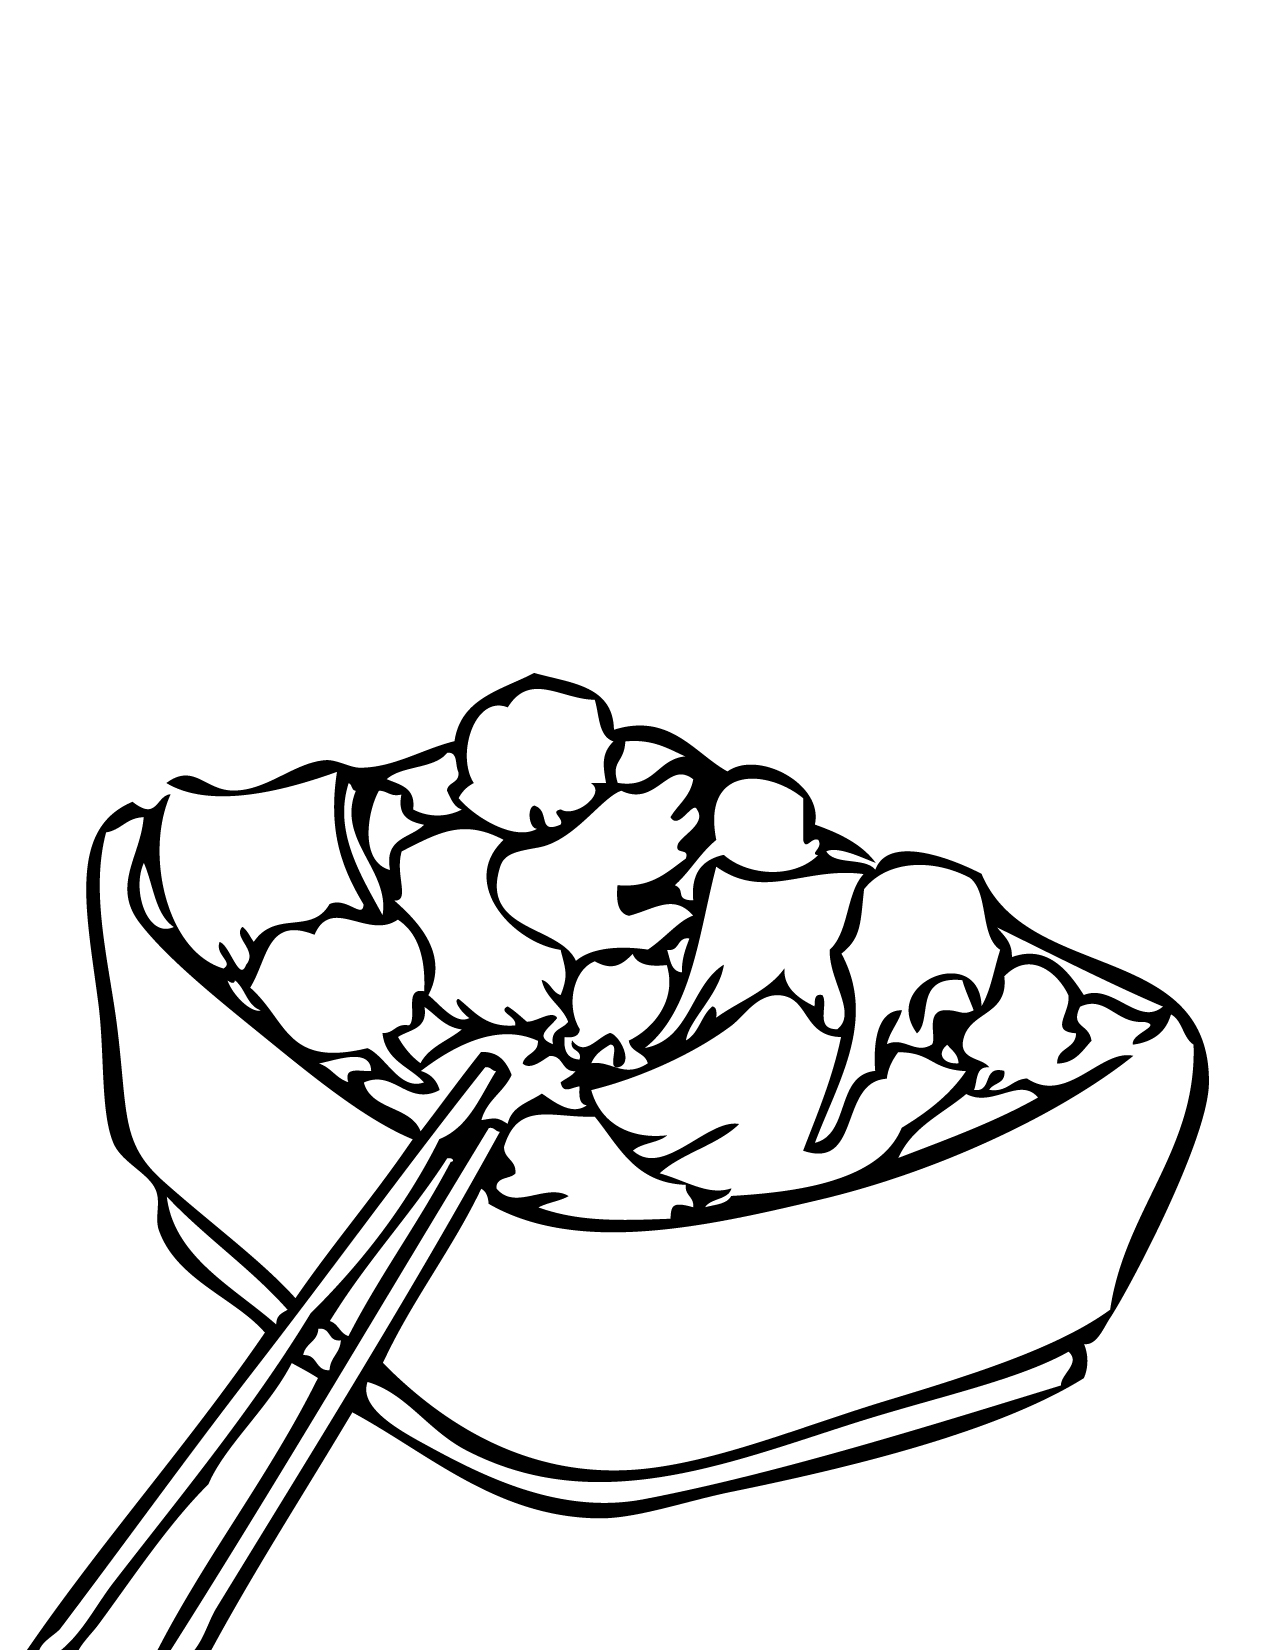 Broccoli clipart coloring page. Elegant beef ink with